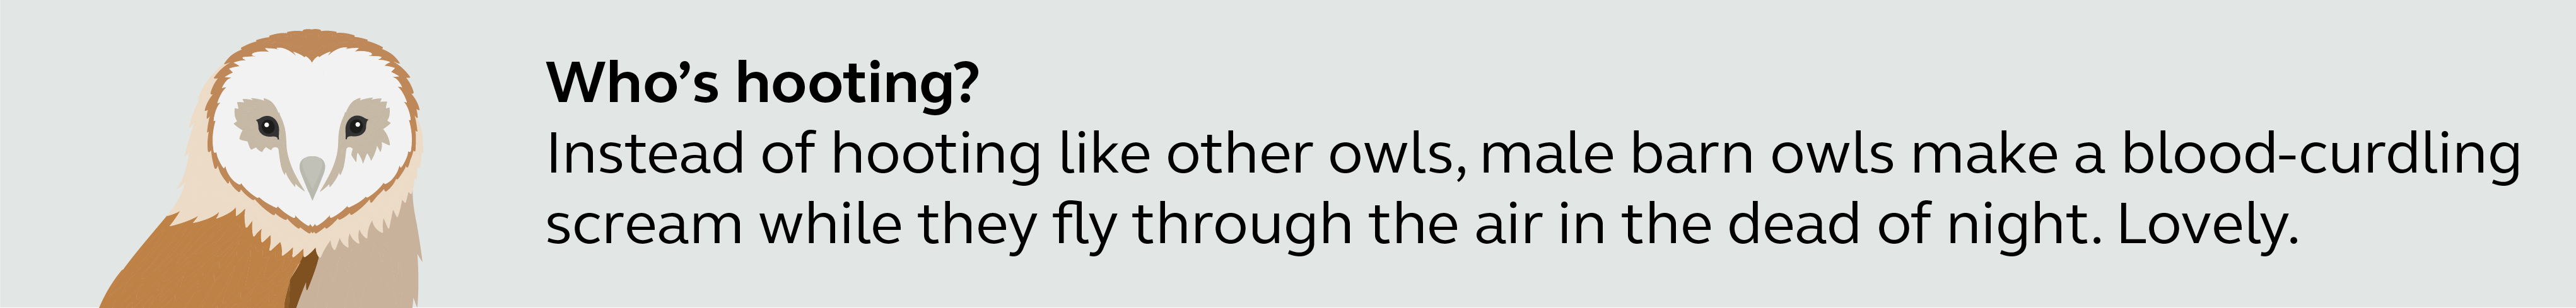 Illustration and information about barn owls